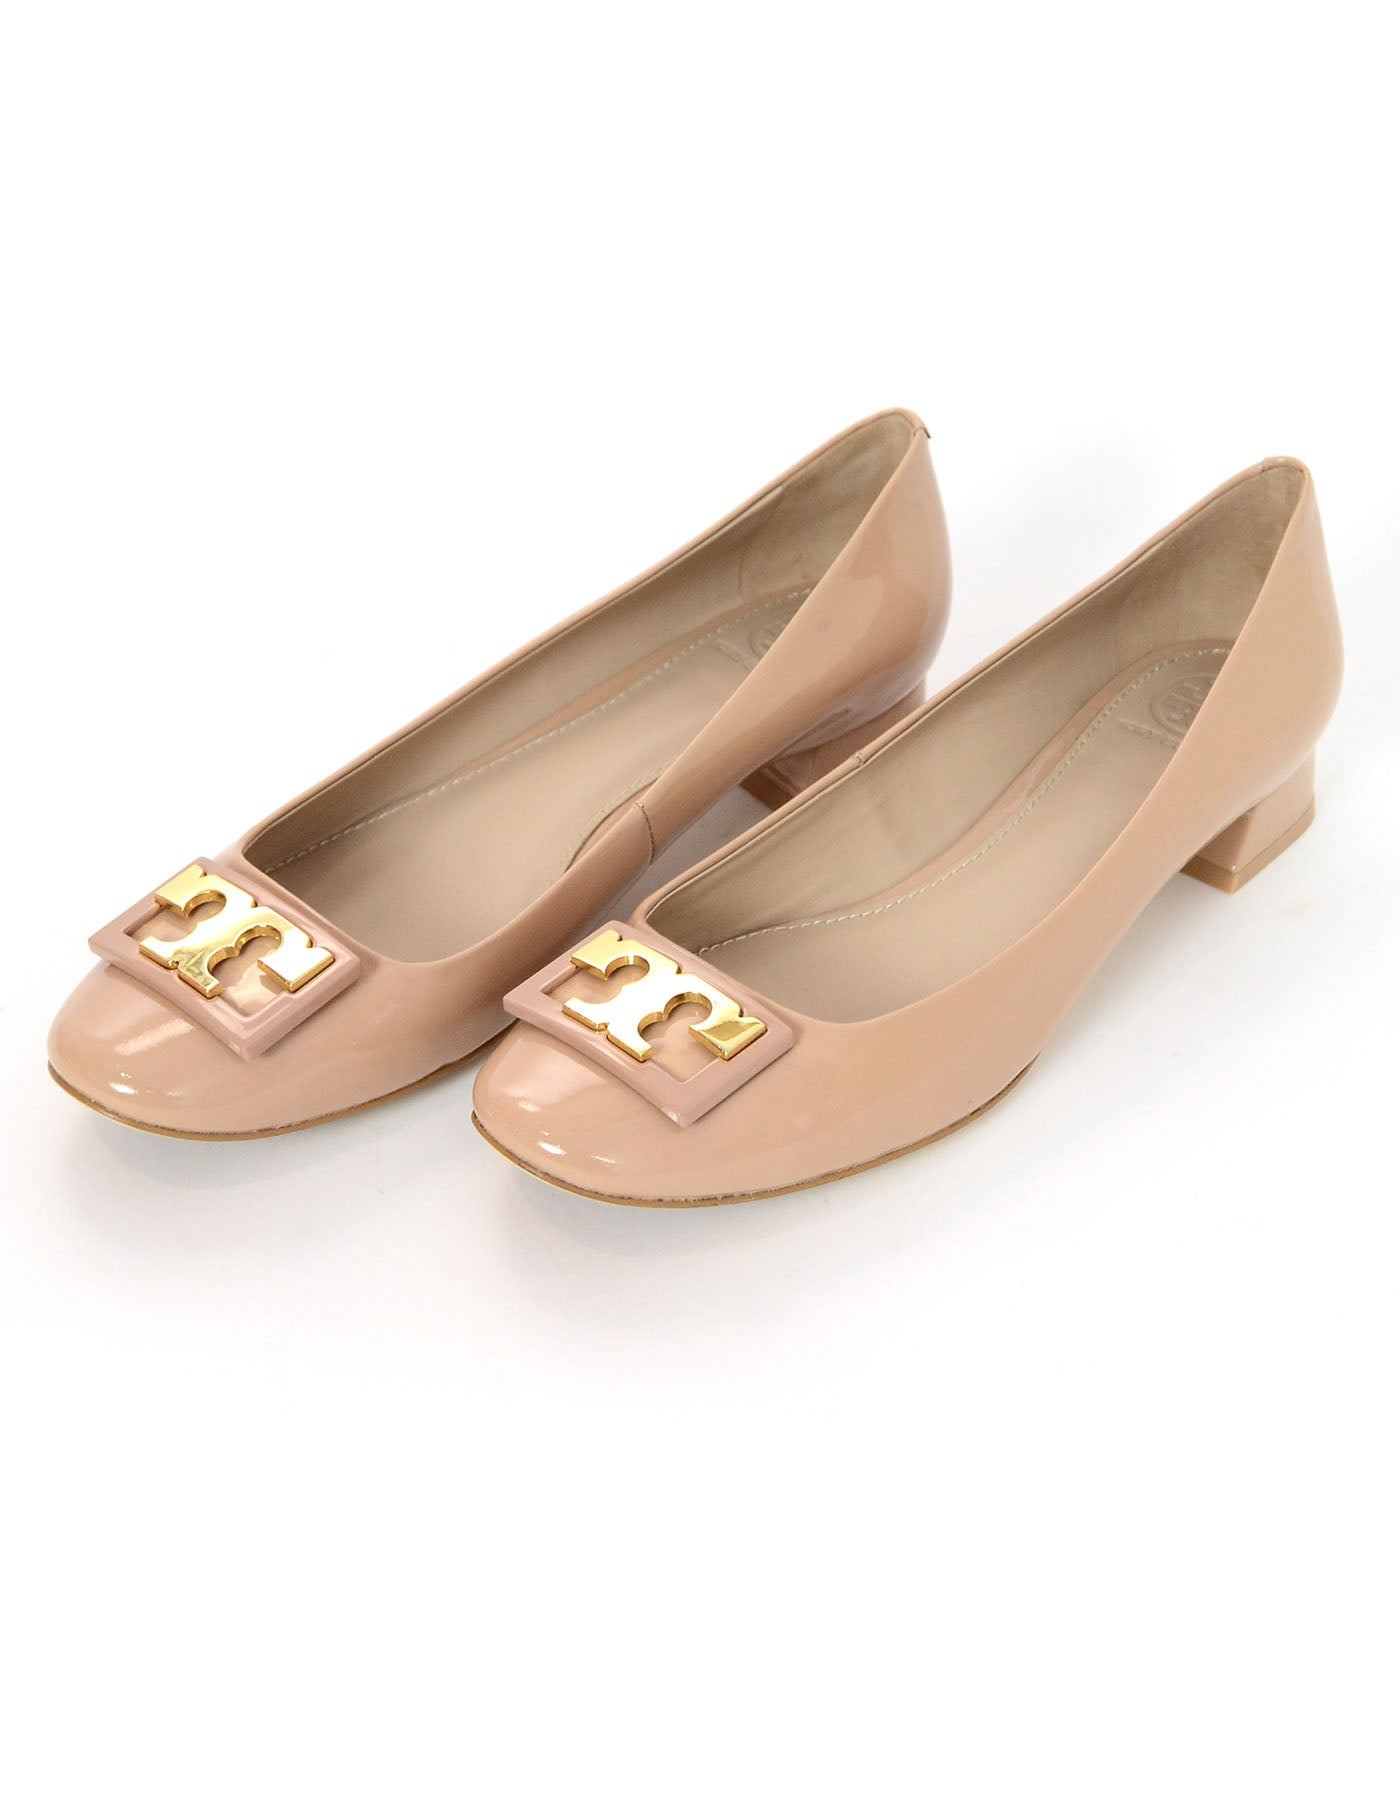 c2776b5f853d Tory Burch Nude Patent Gigi Shoes For Sale at 1stdibs